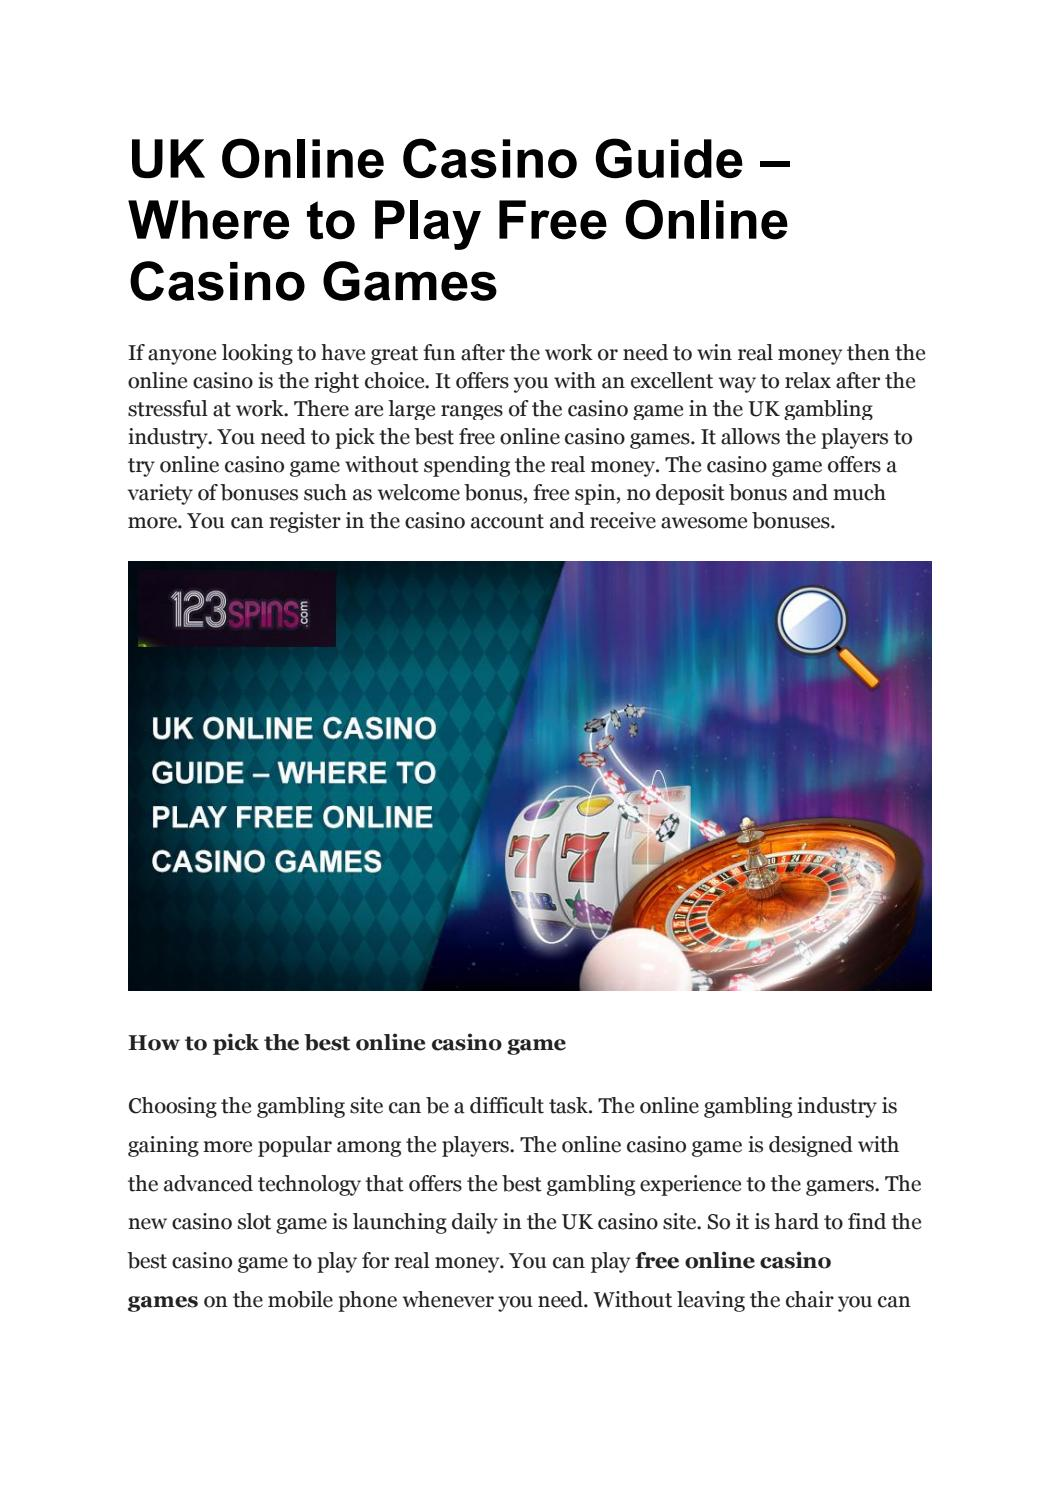 Uk Online Casino Guide Where To Play Free Online Casino Games By